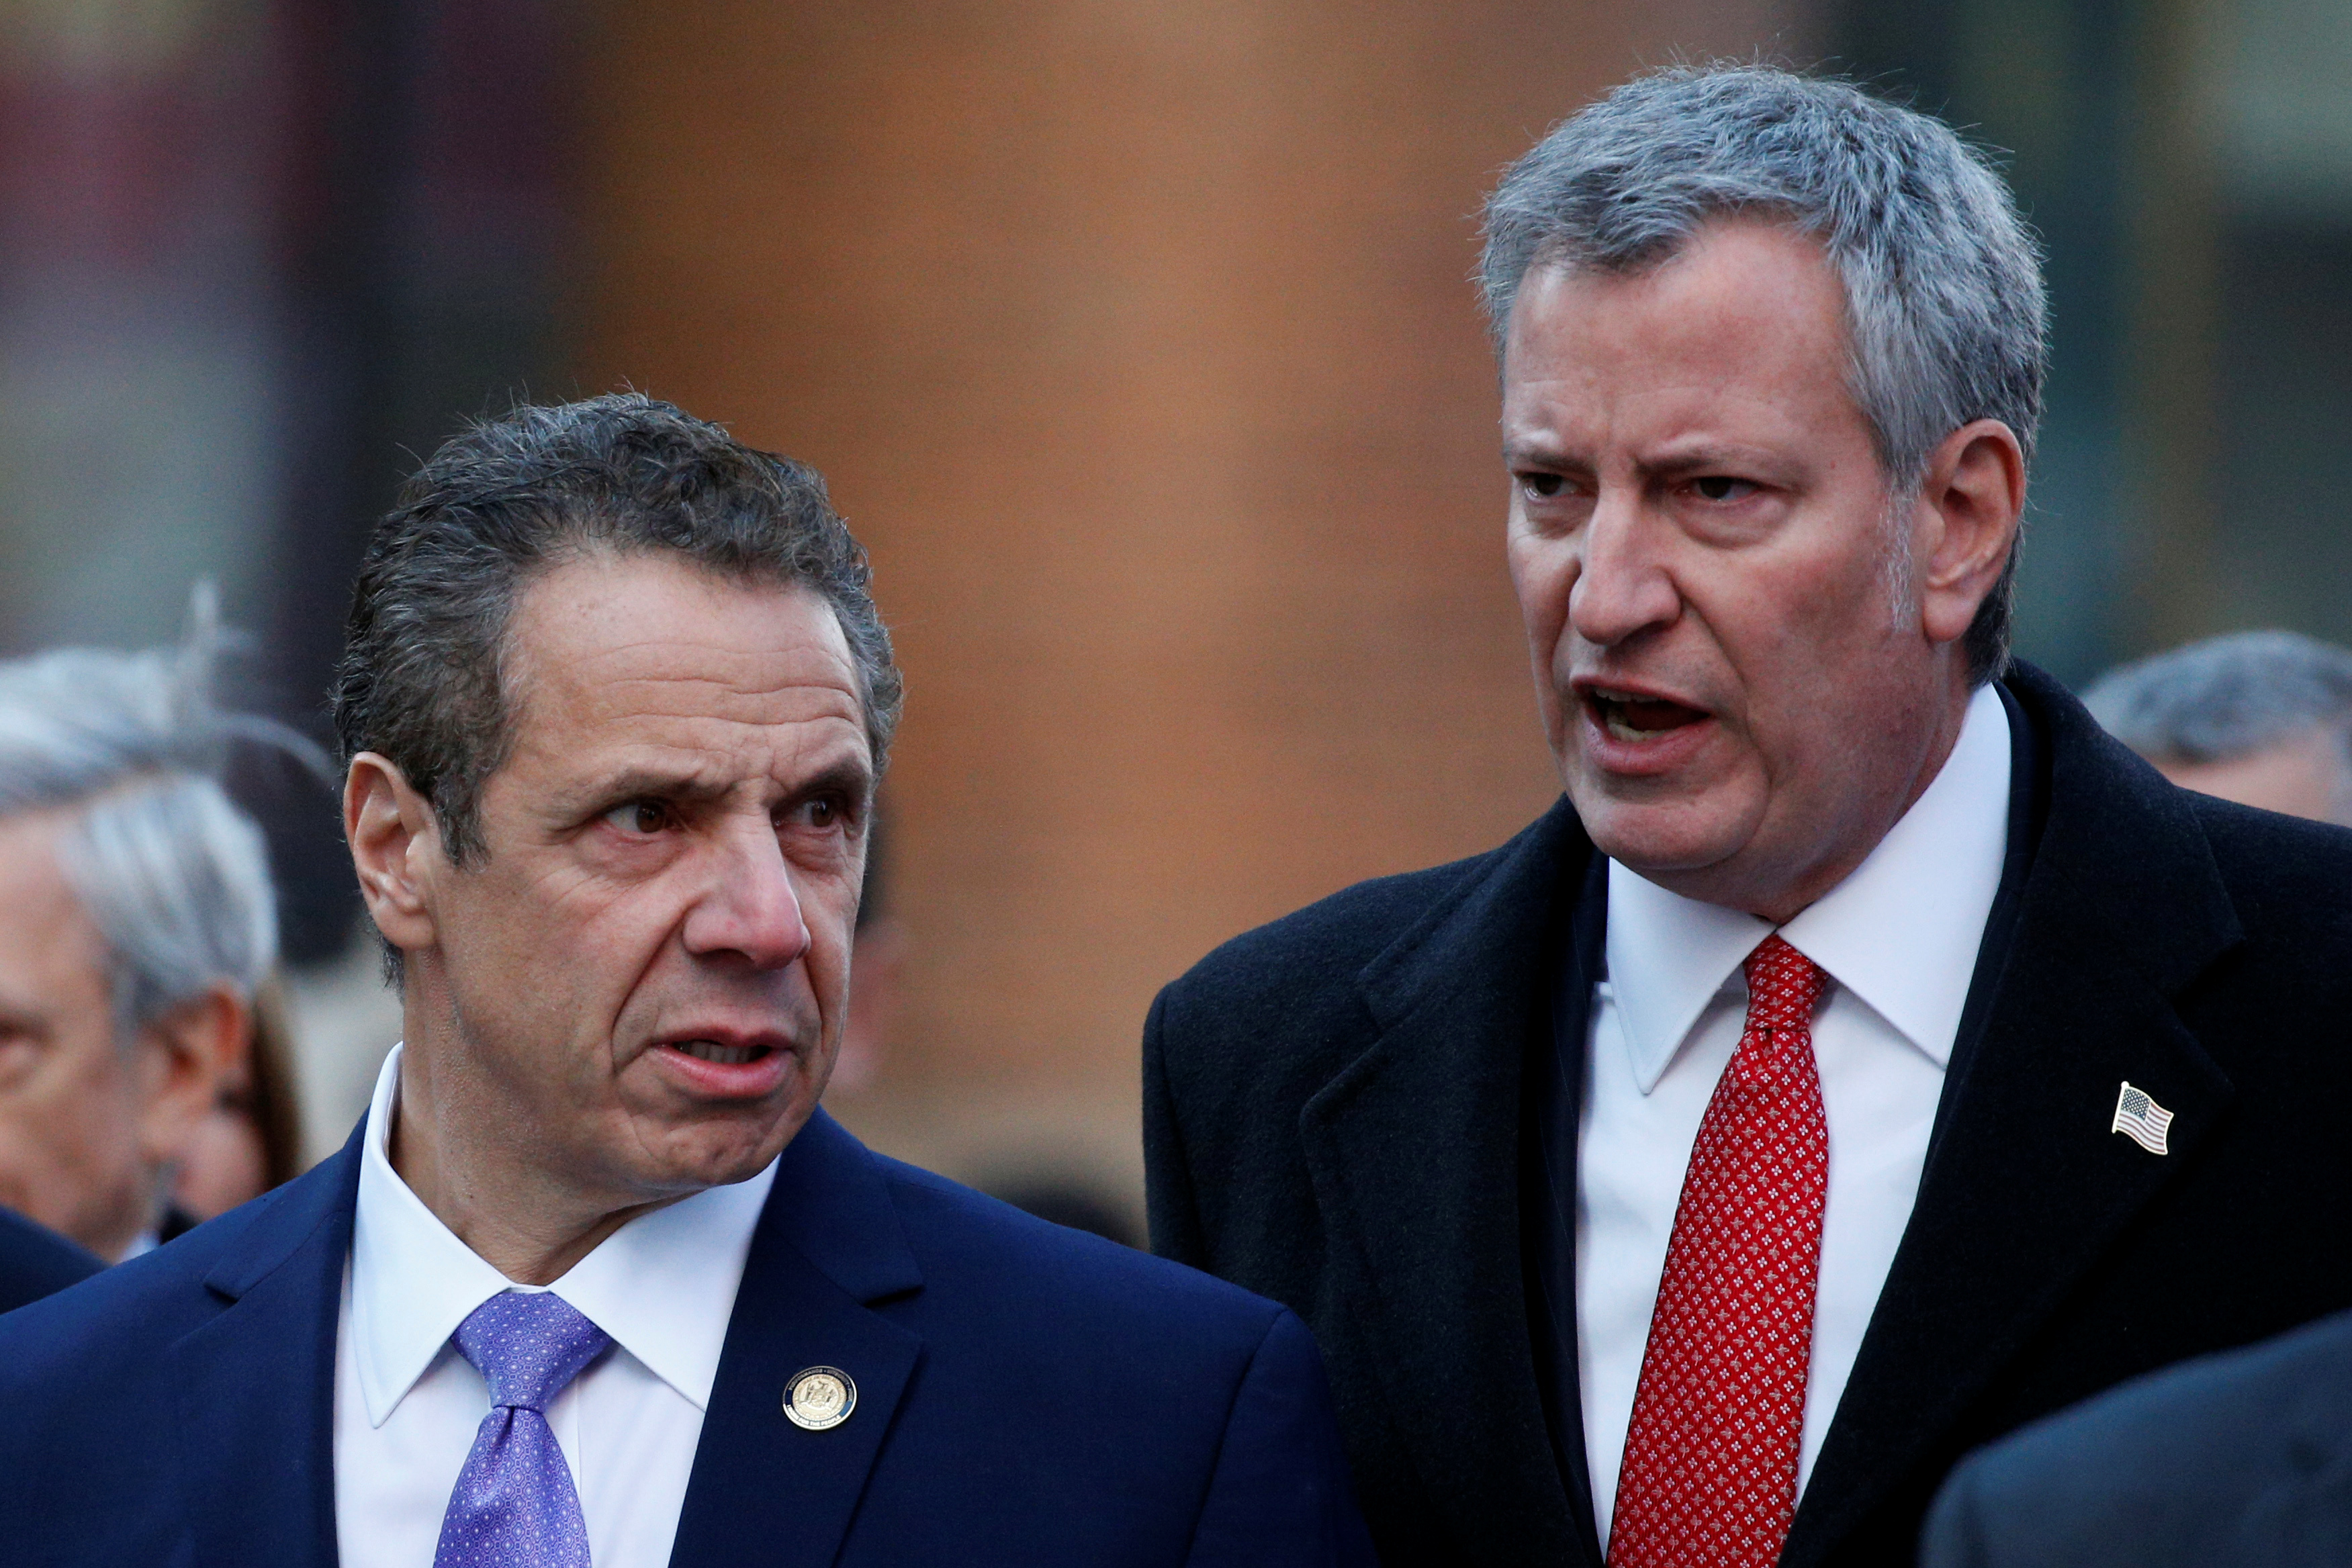 New York State Governor Andrew Cuomo and New York Mayor Bill de Blasio speak as they arrive for a news conference outside the New York Port Authority Bus Terminal following reports of an explosion, in New York City